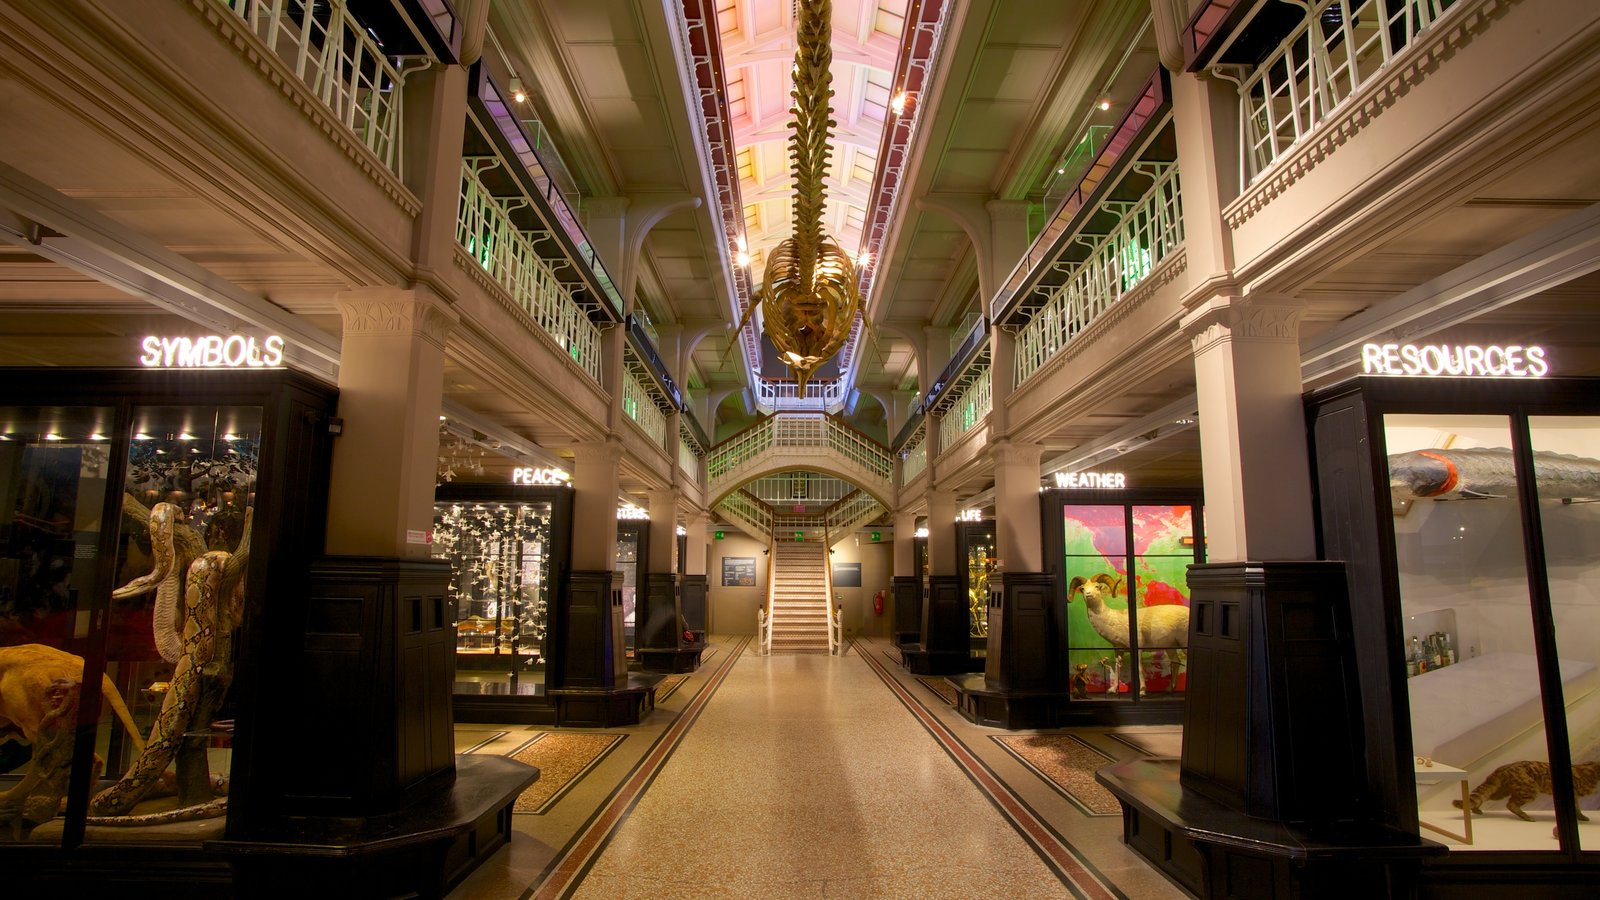 Manchester Museum showing interior views